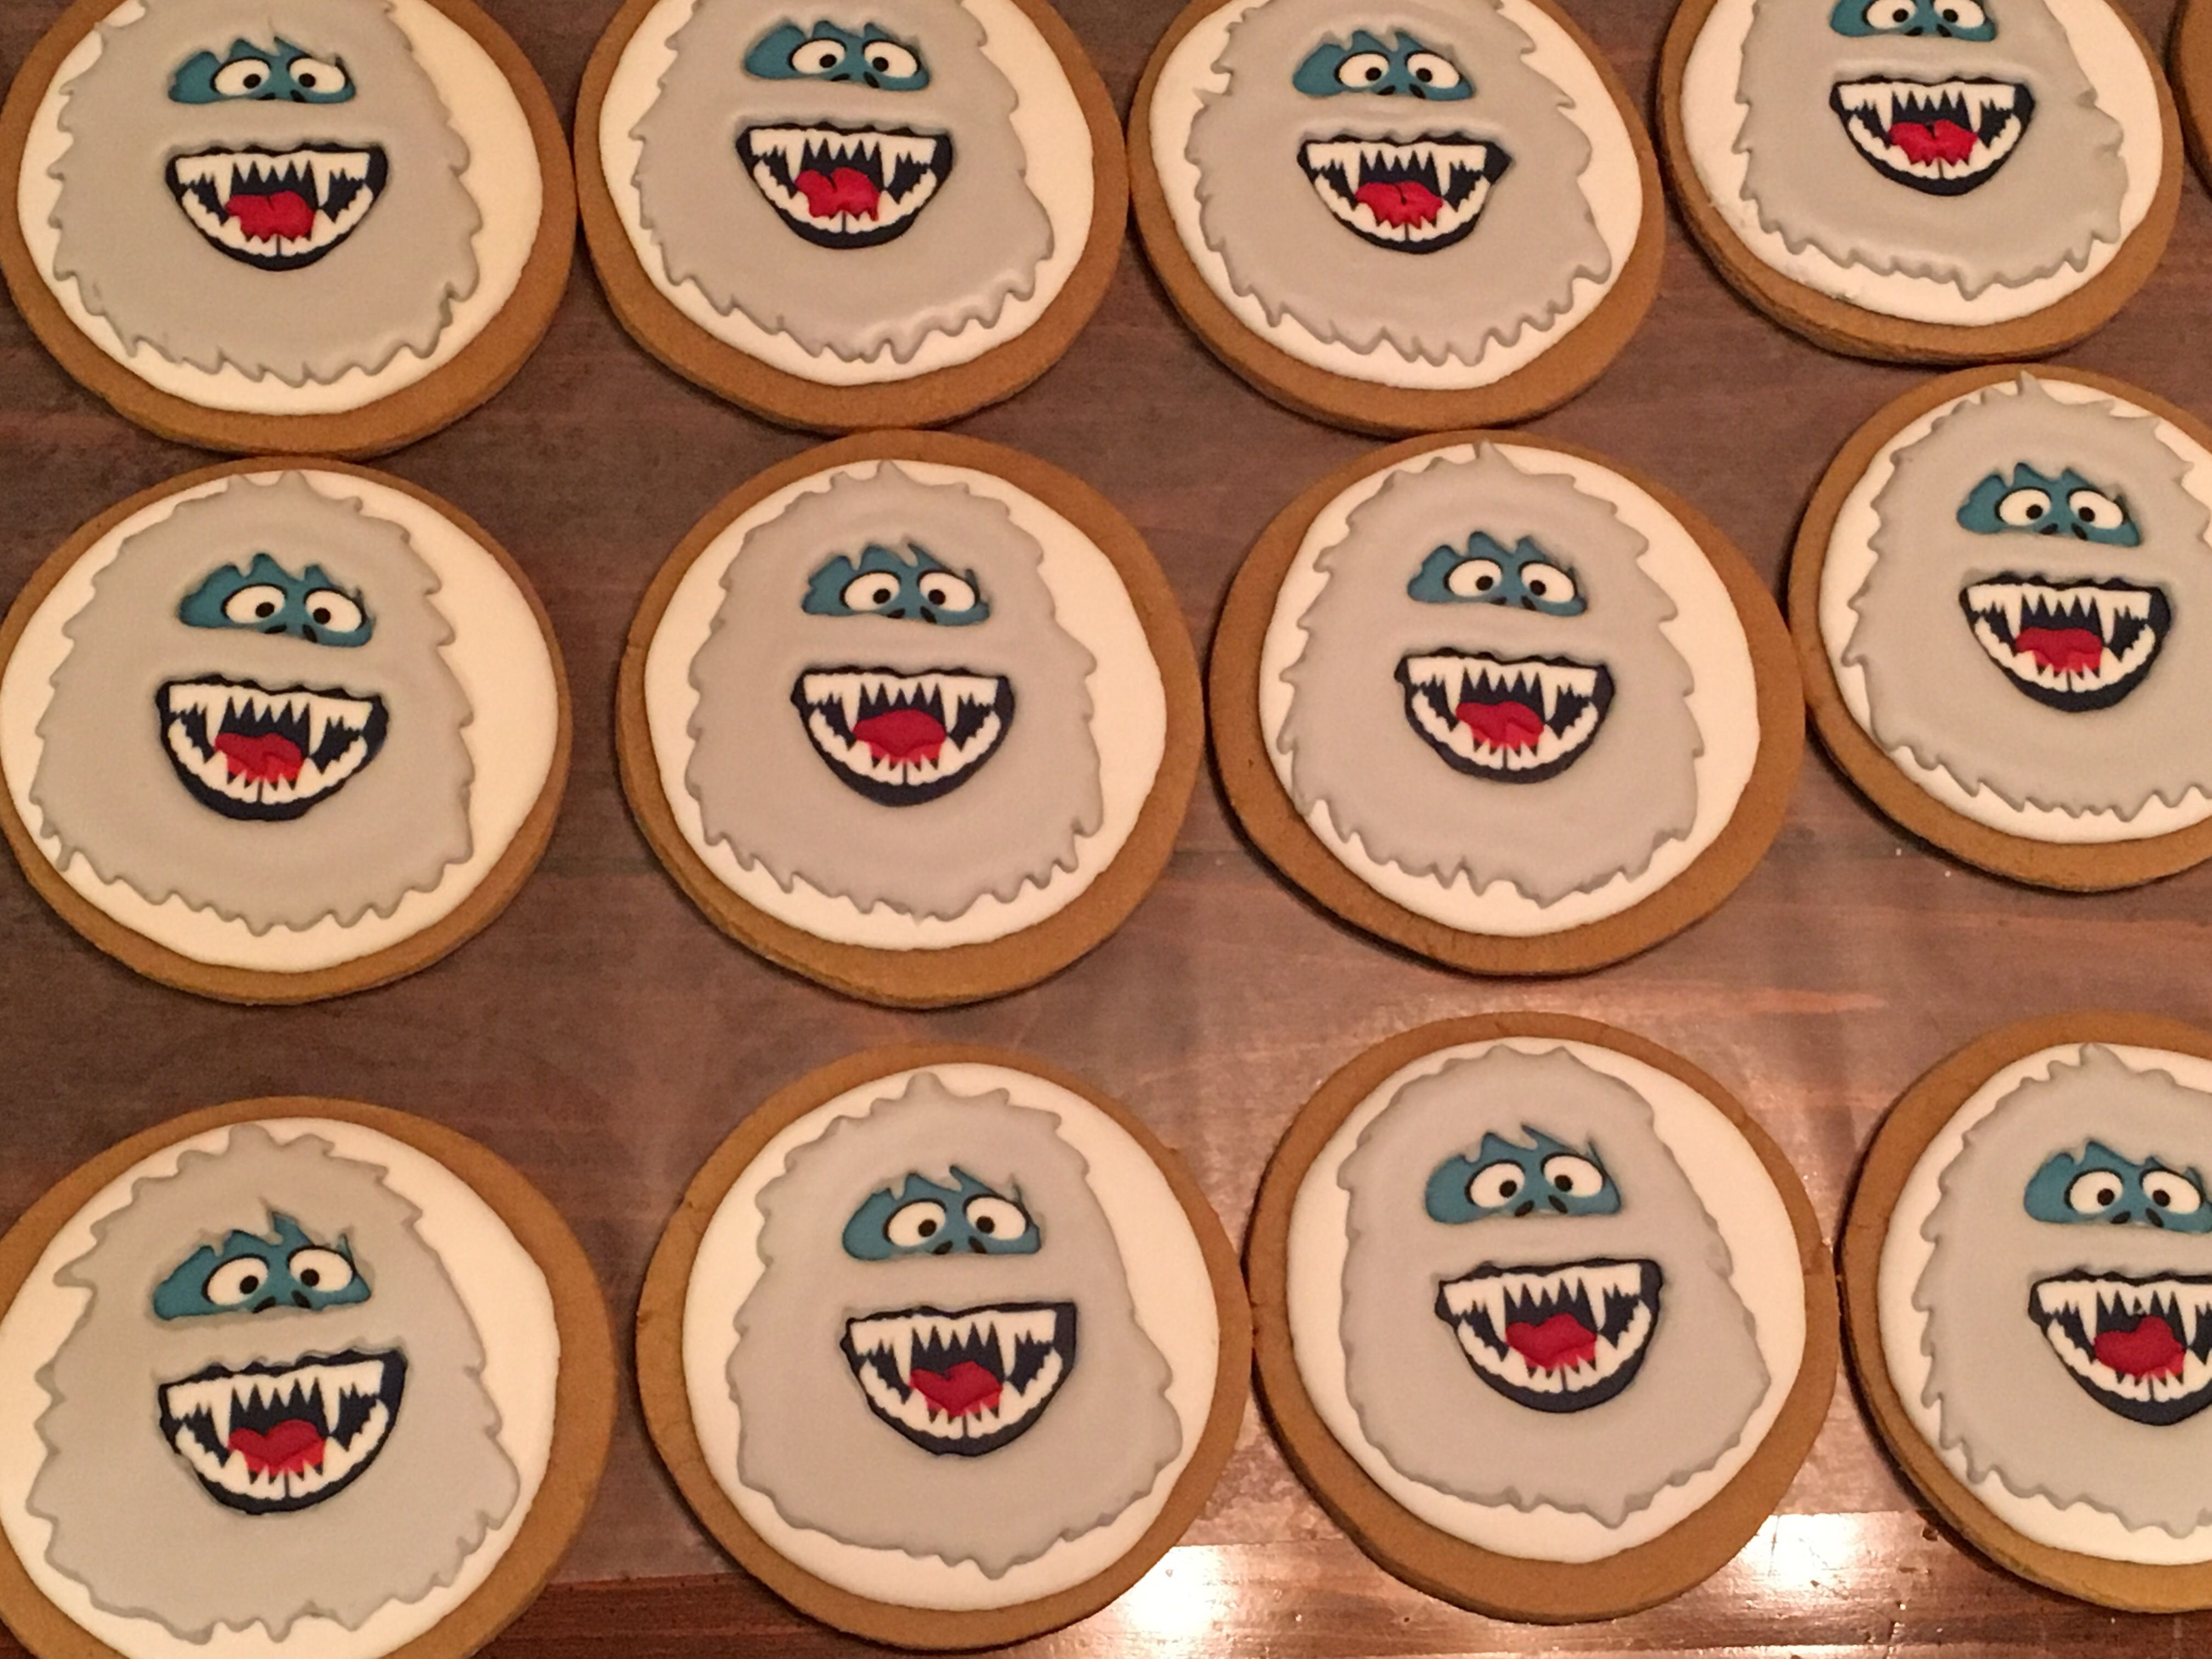 Bumble Abominable Snowman Cookies I Made For The Annual Cookie